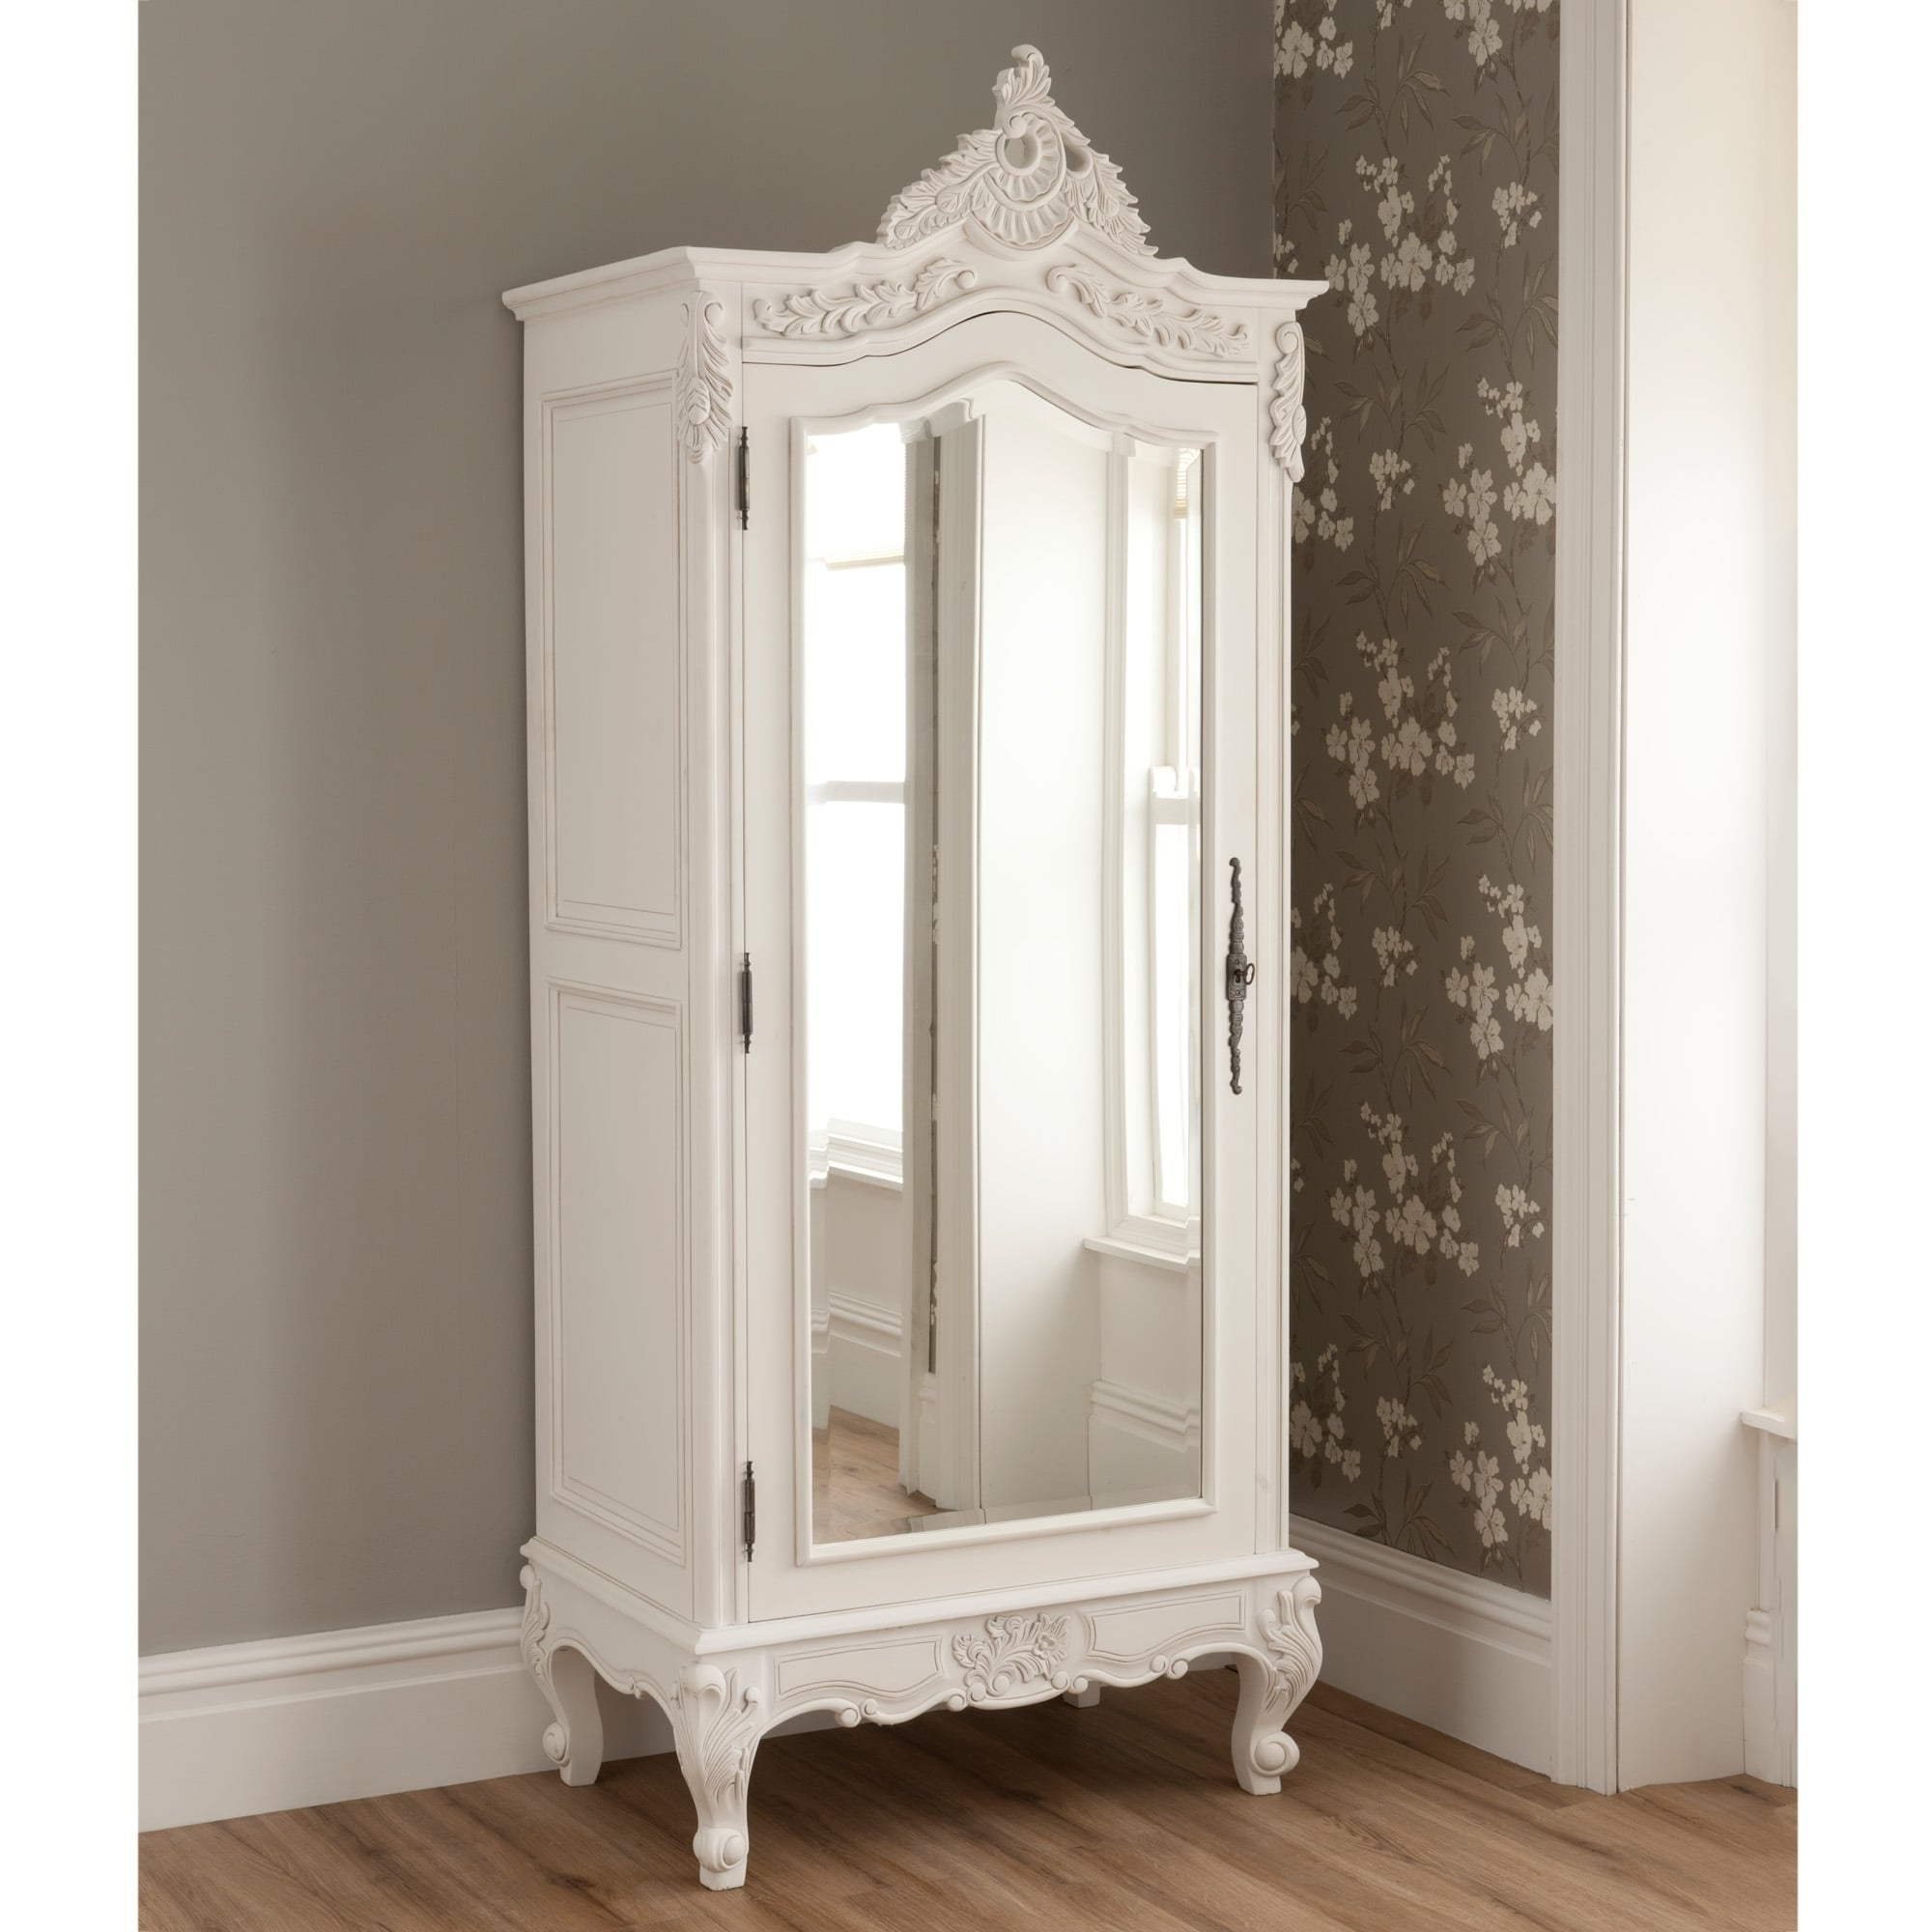 La Rochelle Mirrored Antique French 1 Door Wardrobe For Widely Used Vintage French Wardrobes (View 6 of 15)